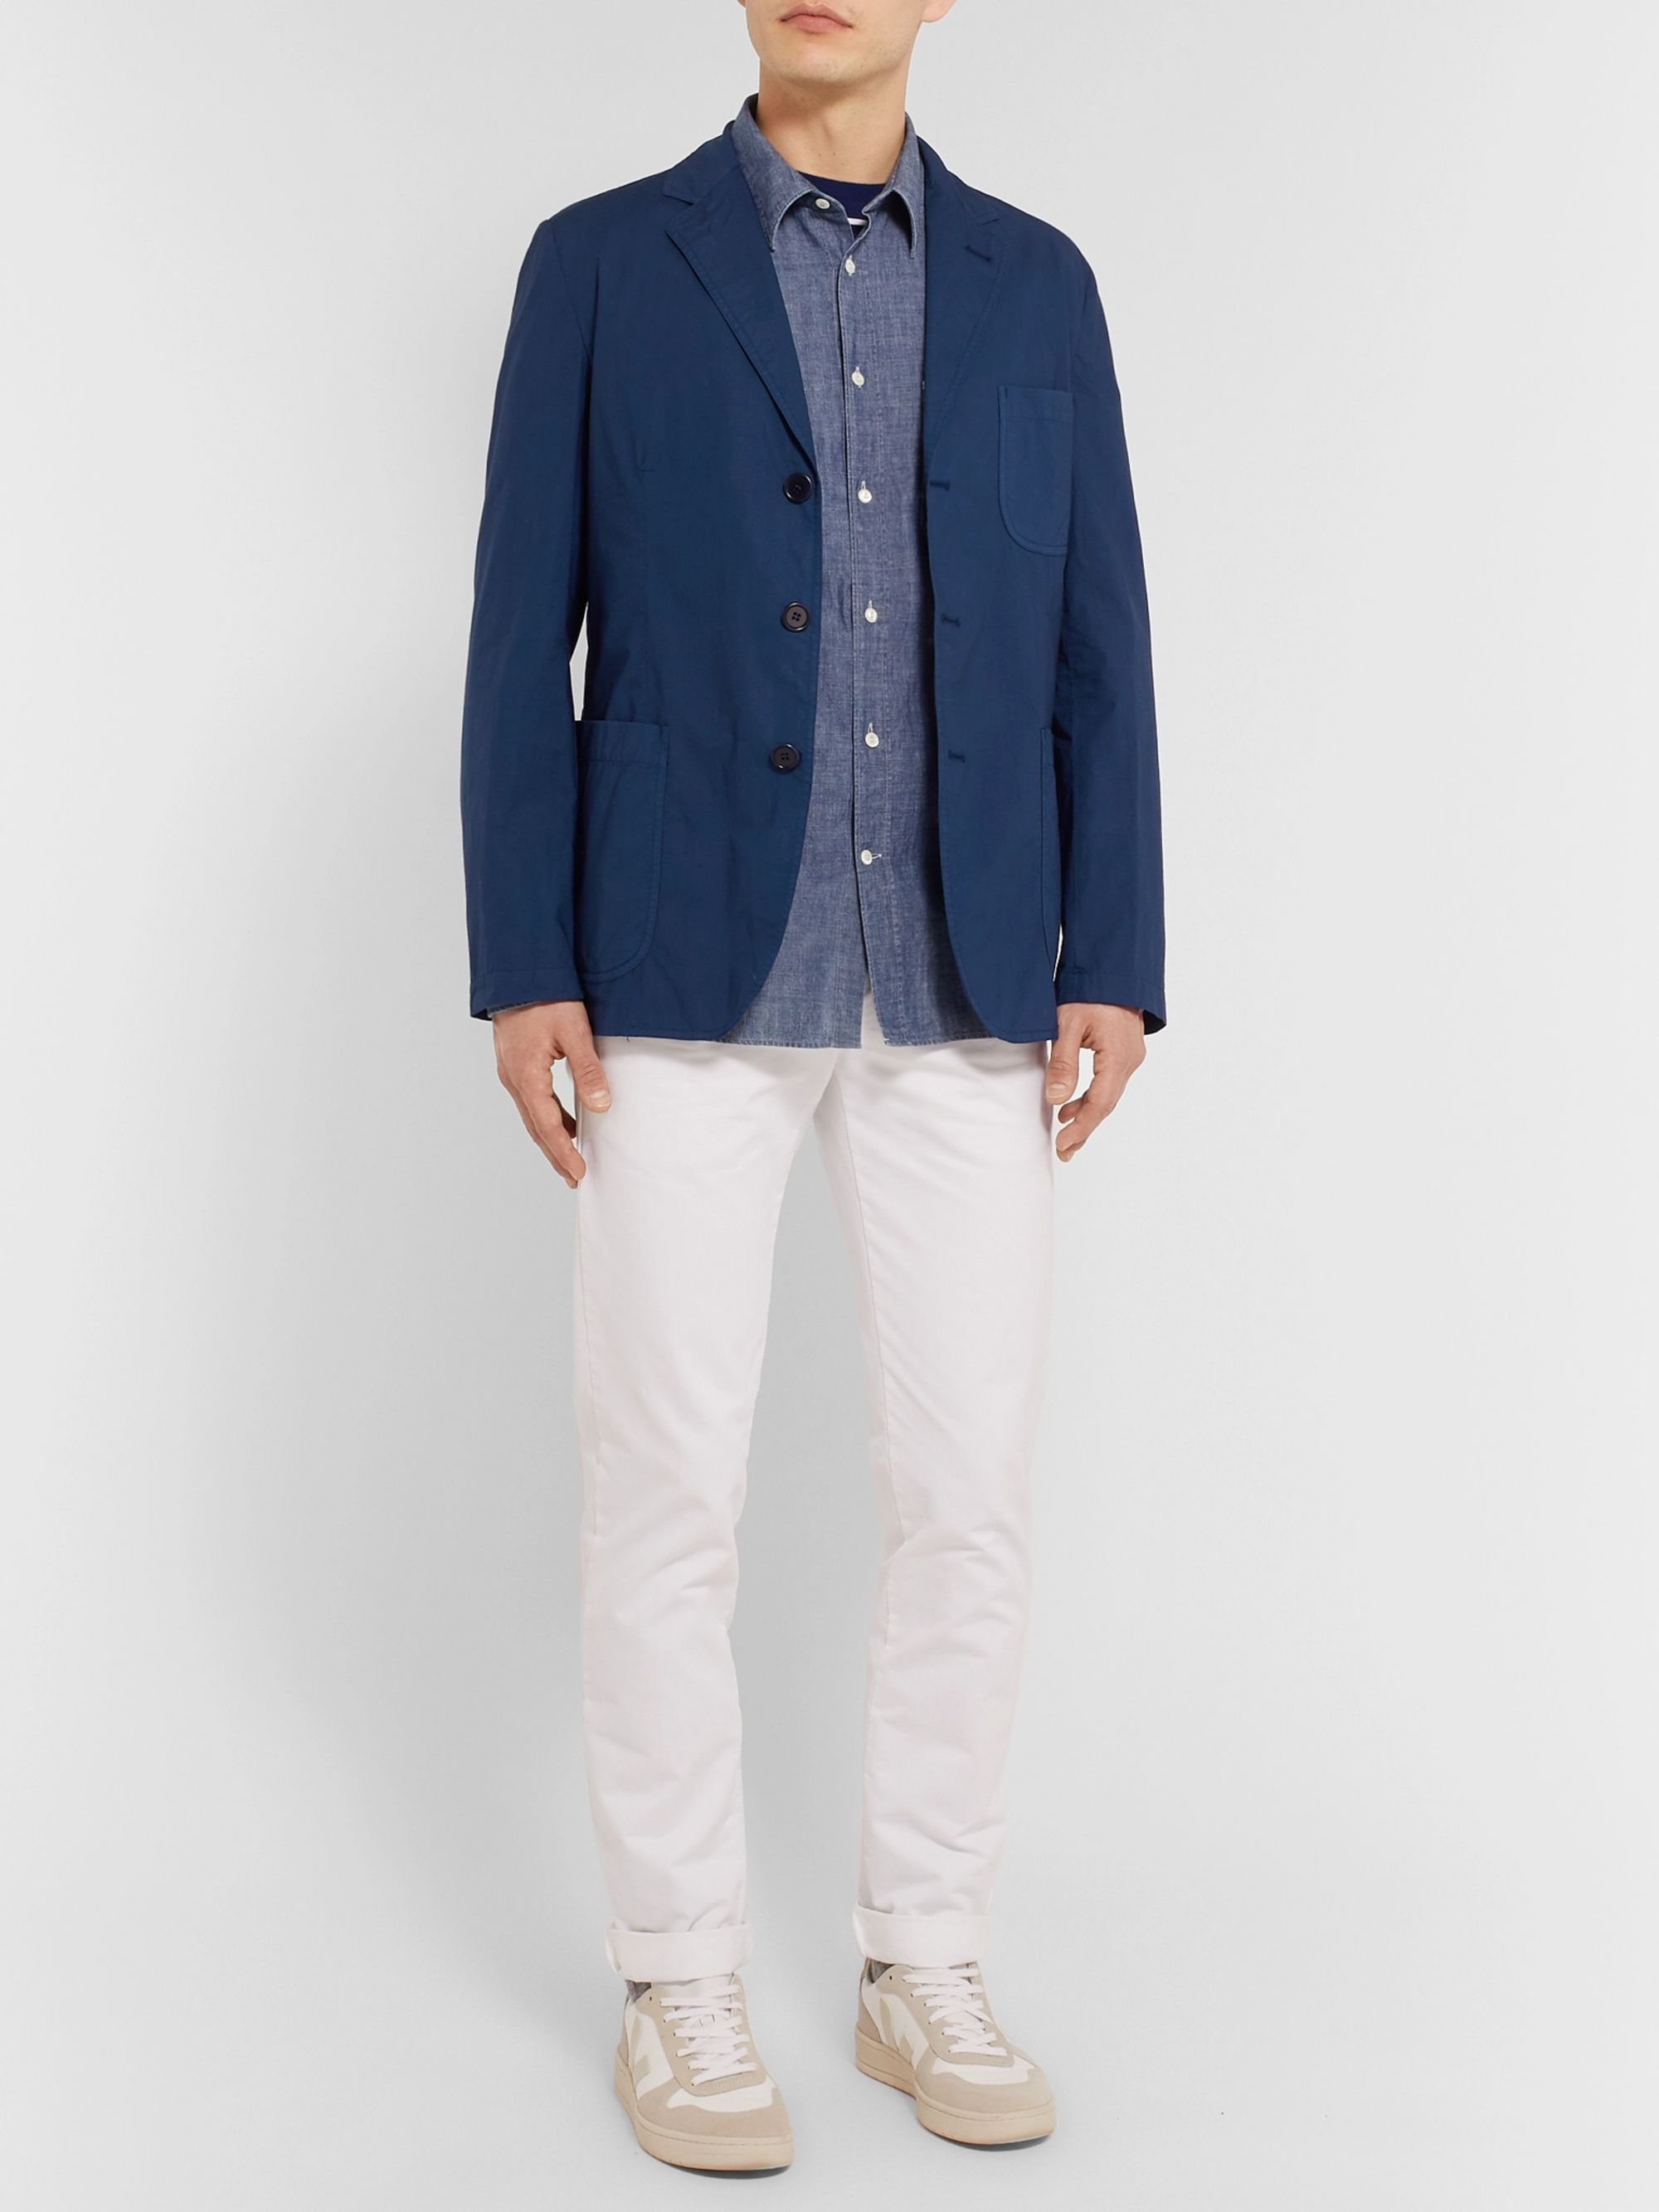 Aspesi Dark-Blue Slim-Fit Unstructured Garment-Dyed Cotton Blazer